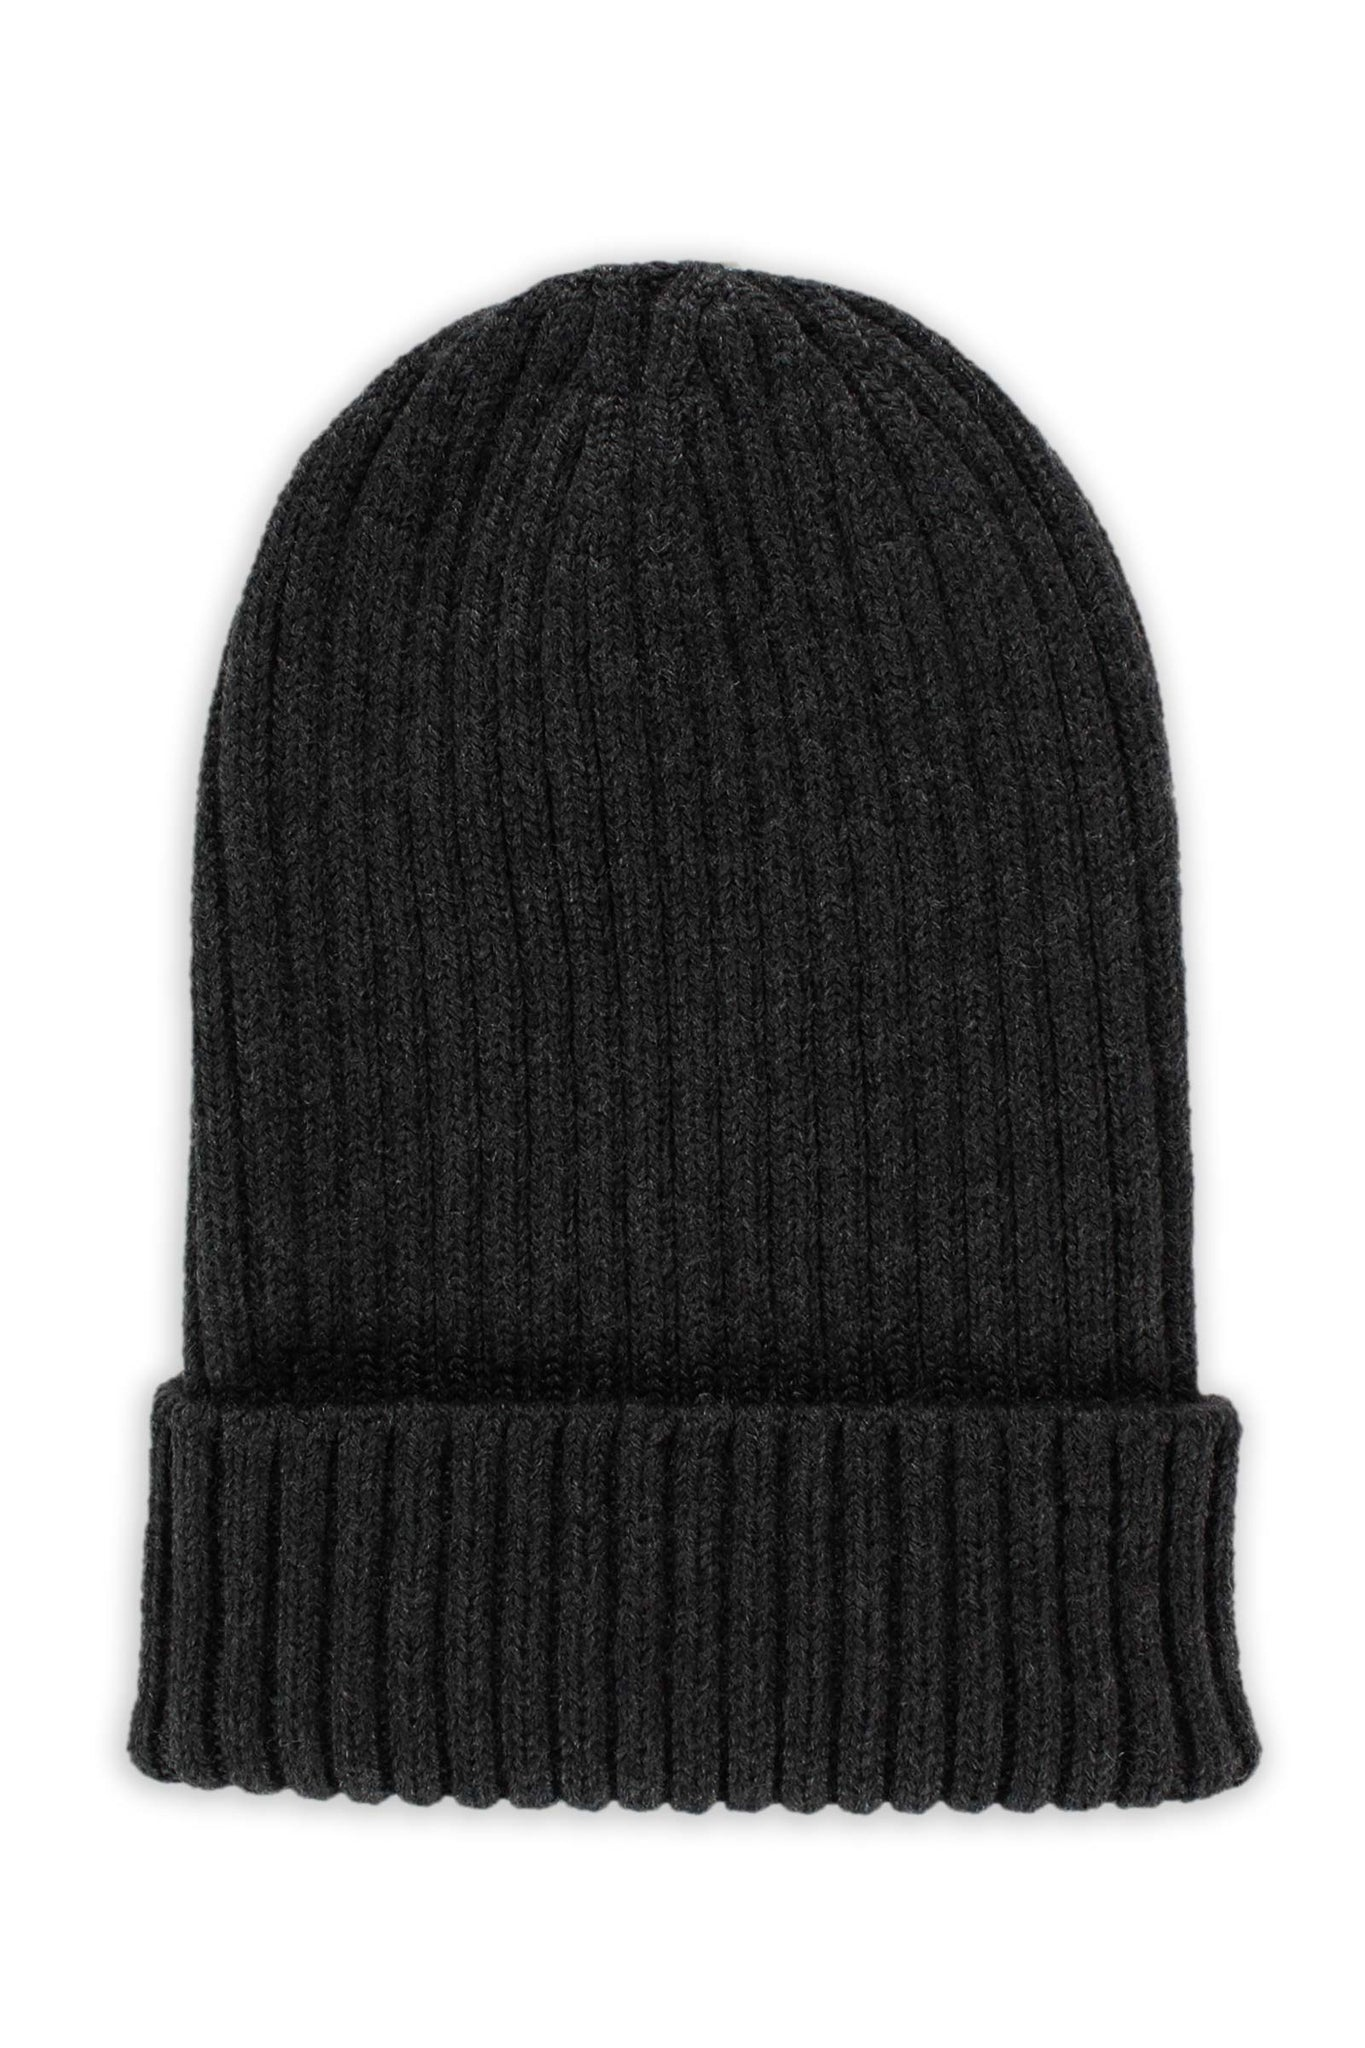 Black Cashmere 2 x 2 Ribbed Beanie